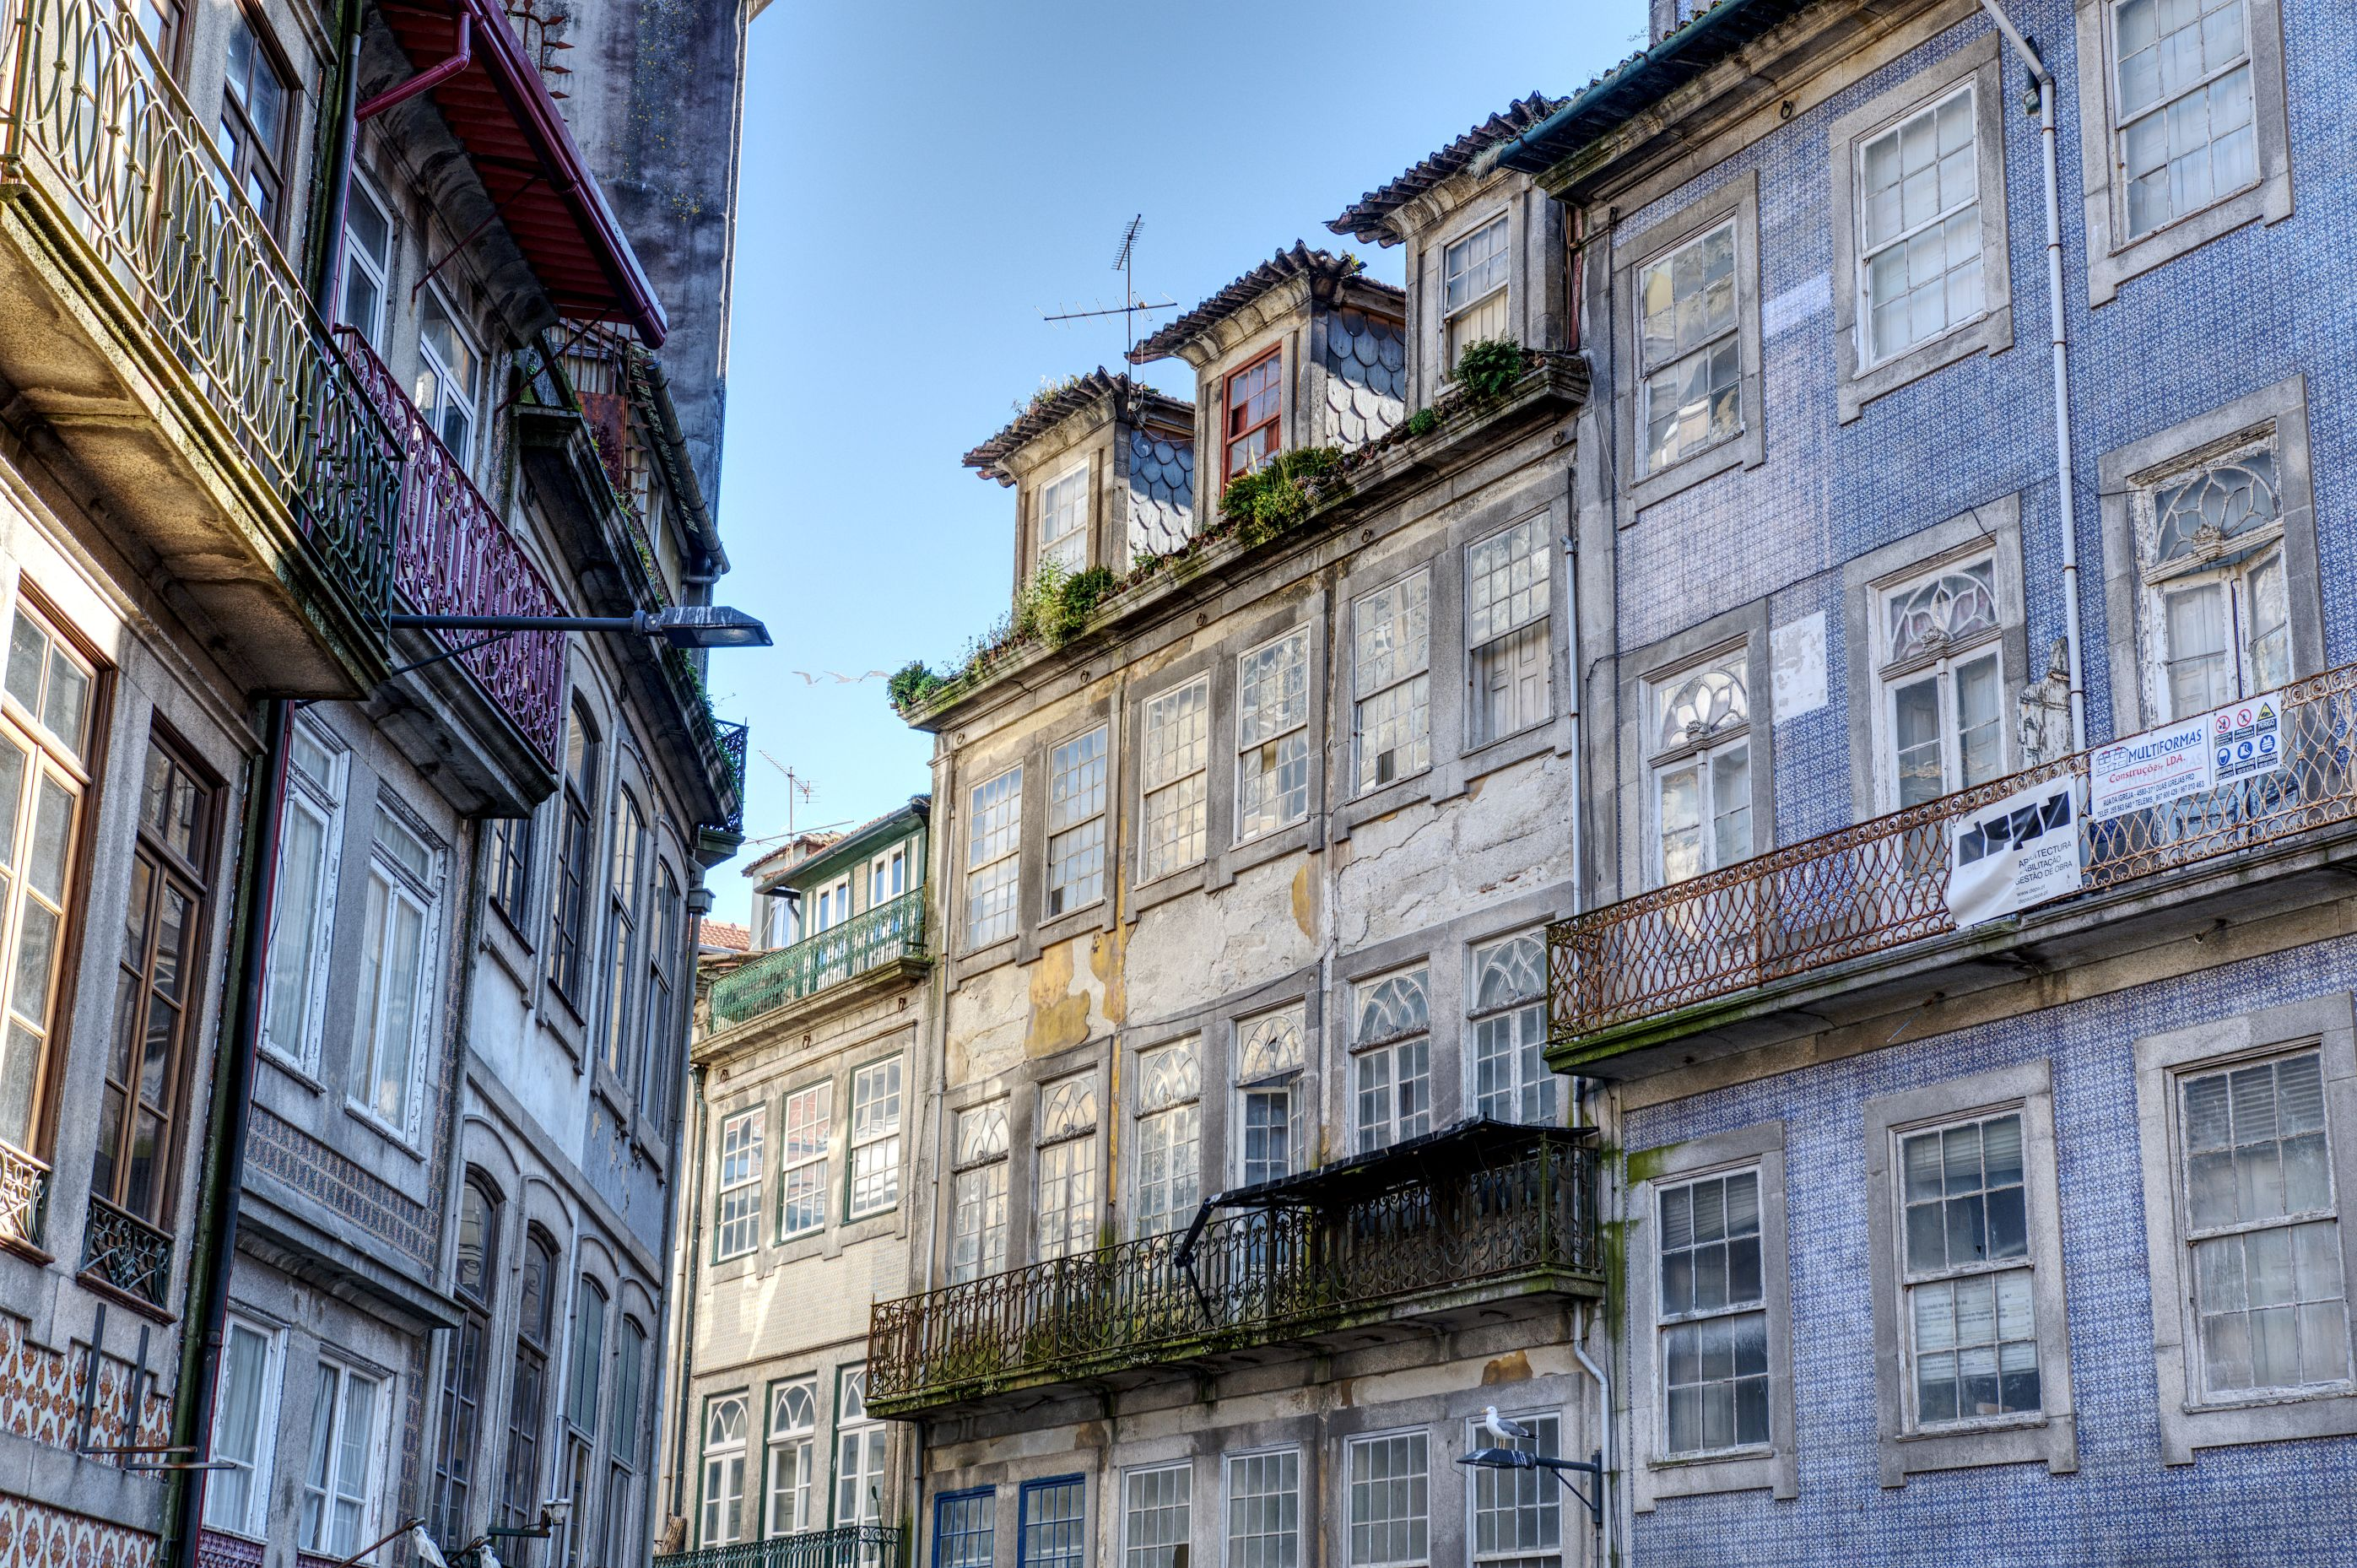 Historic house fronts in Porto's Old Town